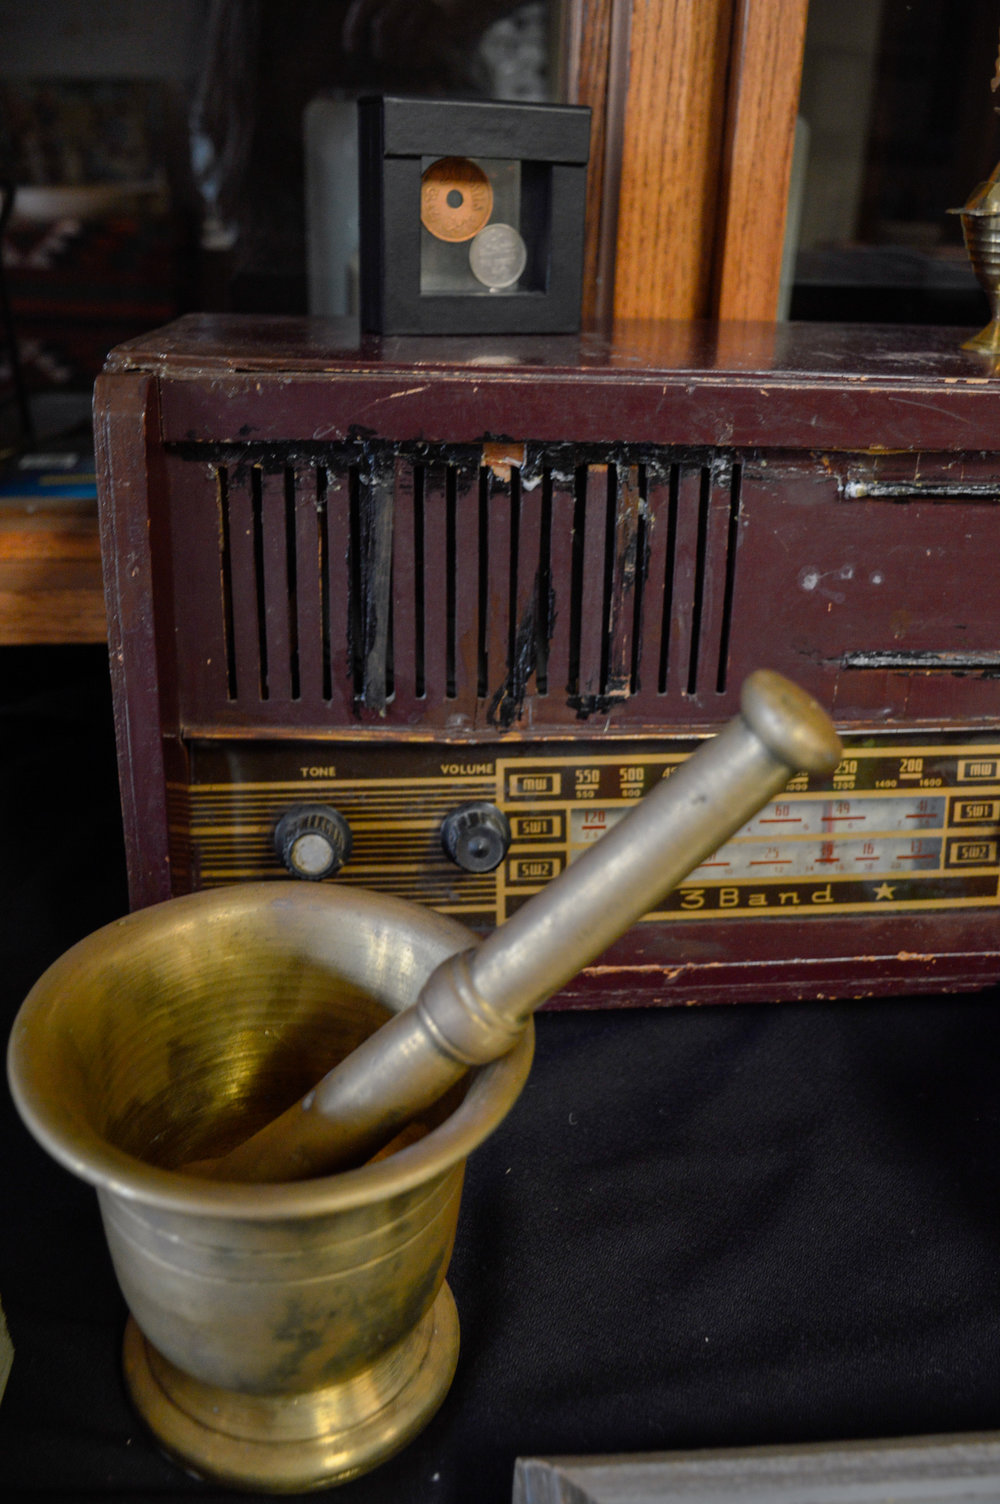 Old radio and artifacts found at Broken Film Festival